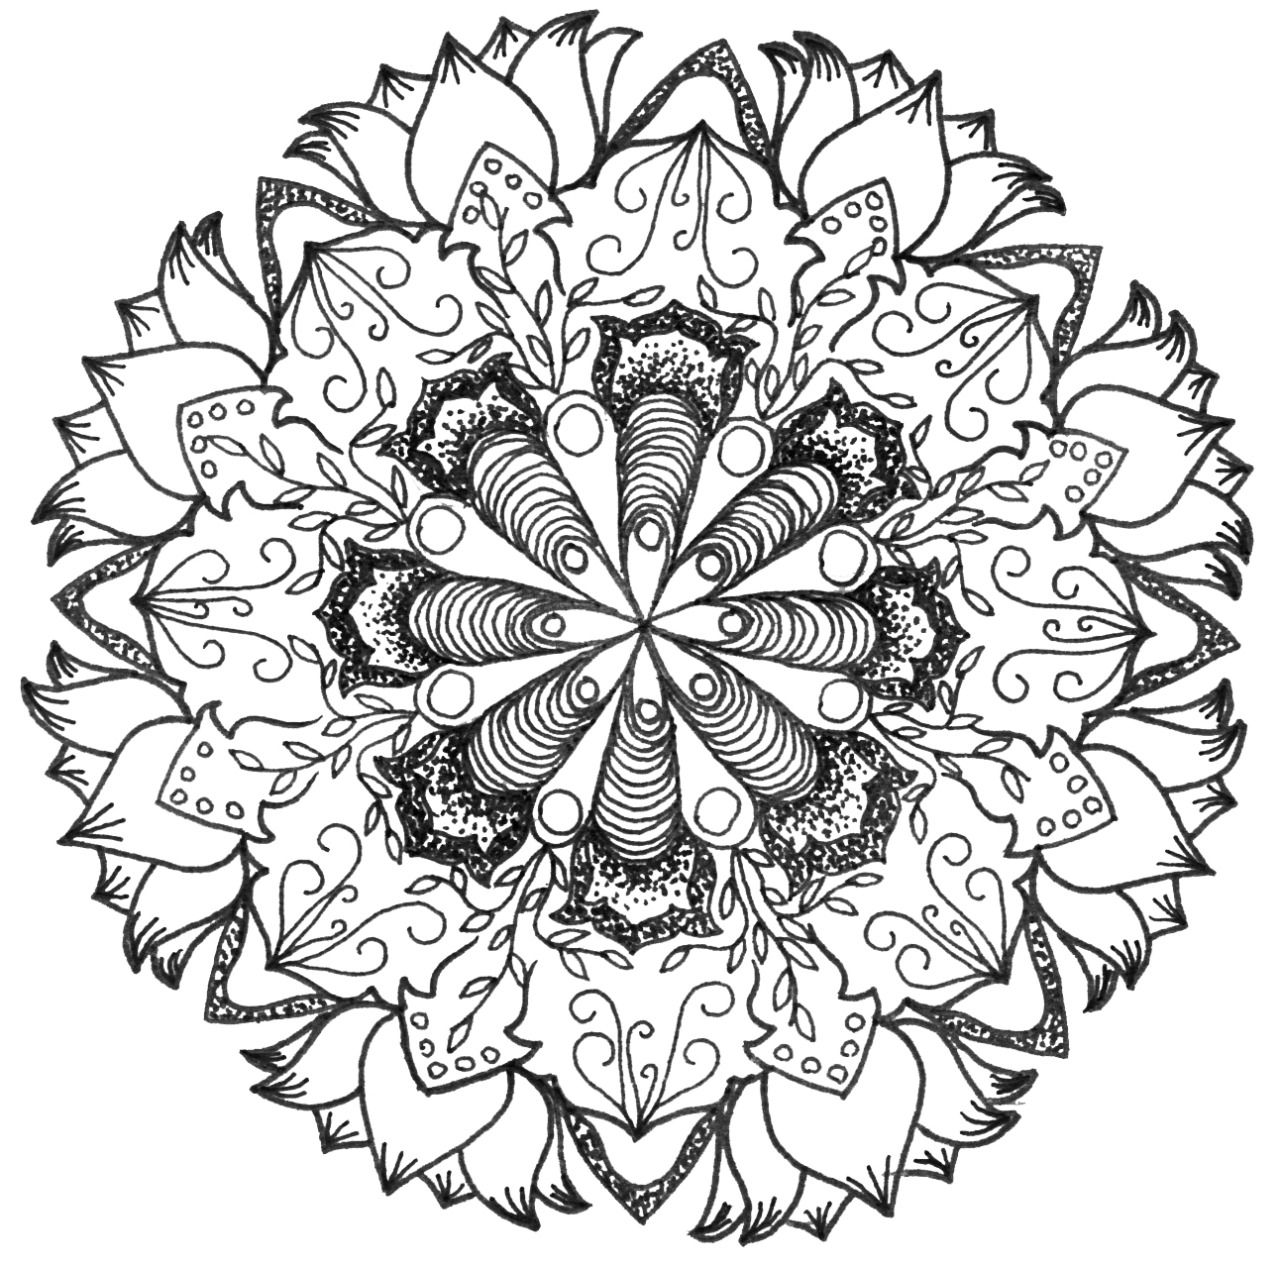 Mandala Abstract Doodle Zentangle Coloring pages colouring ...